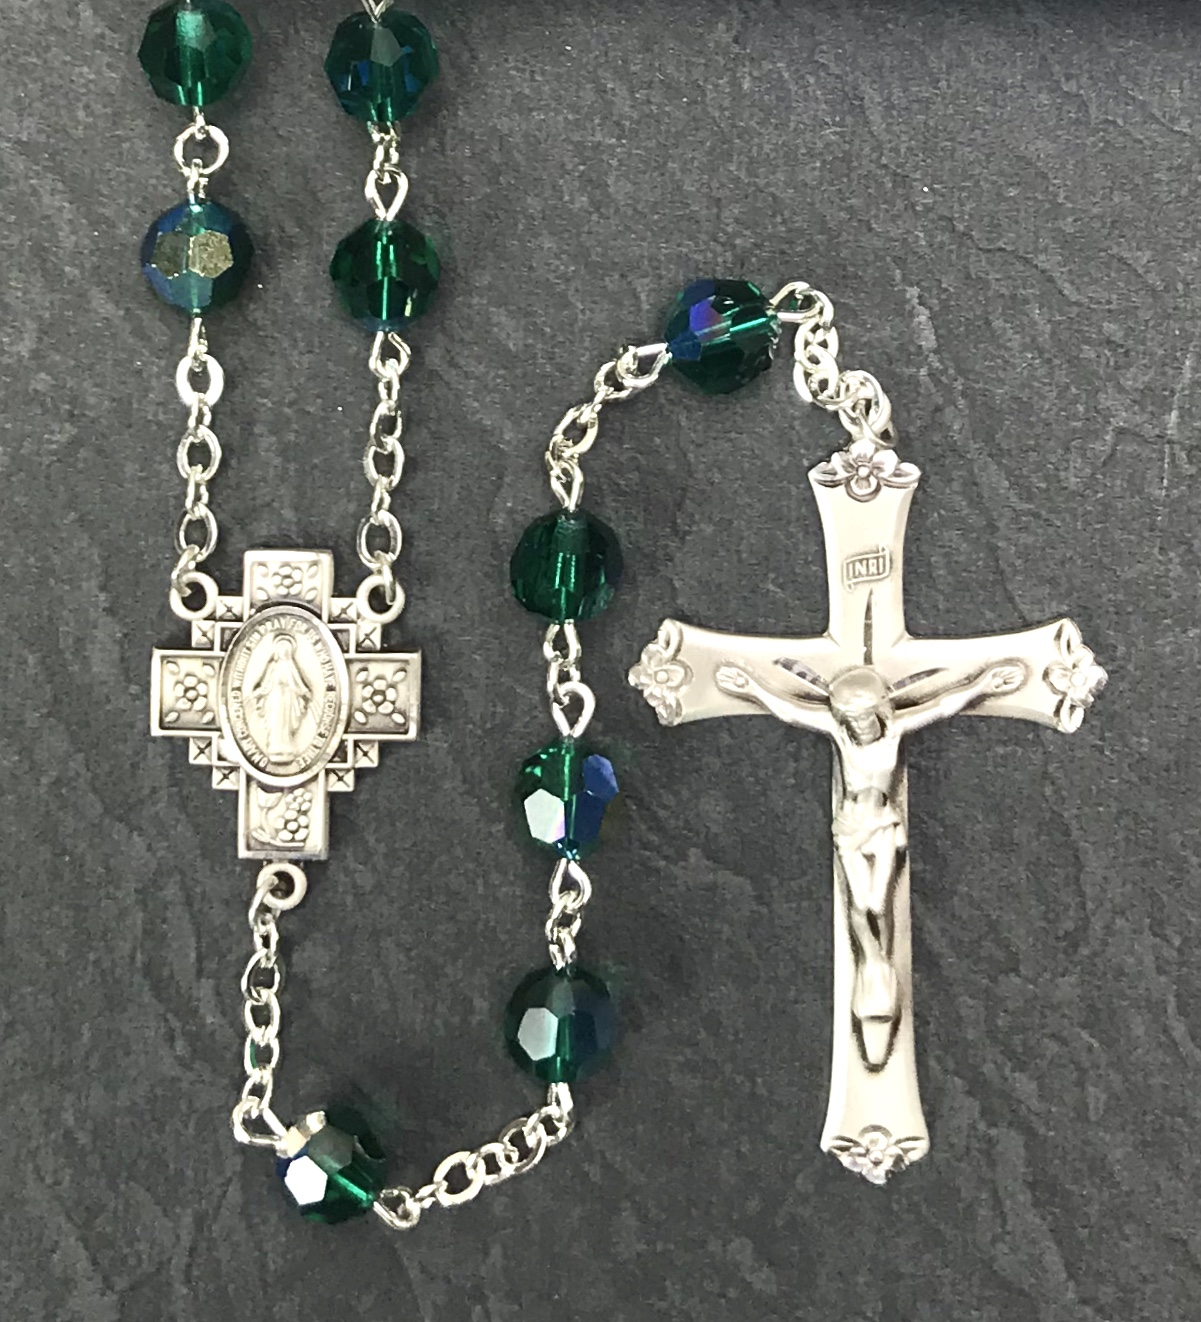 7MM EMERALD TIN CUT AB ALL STERLING SILVER ROSARY